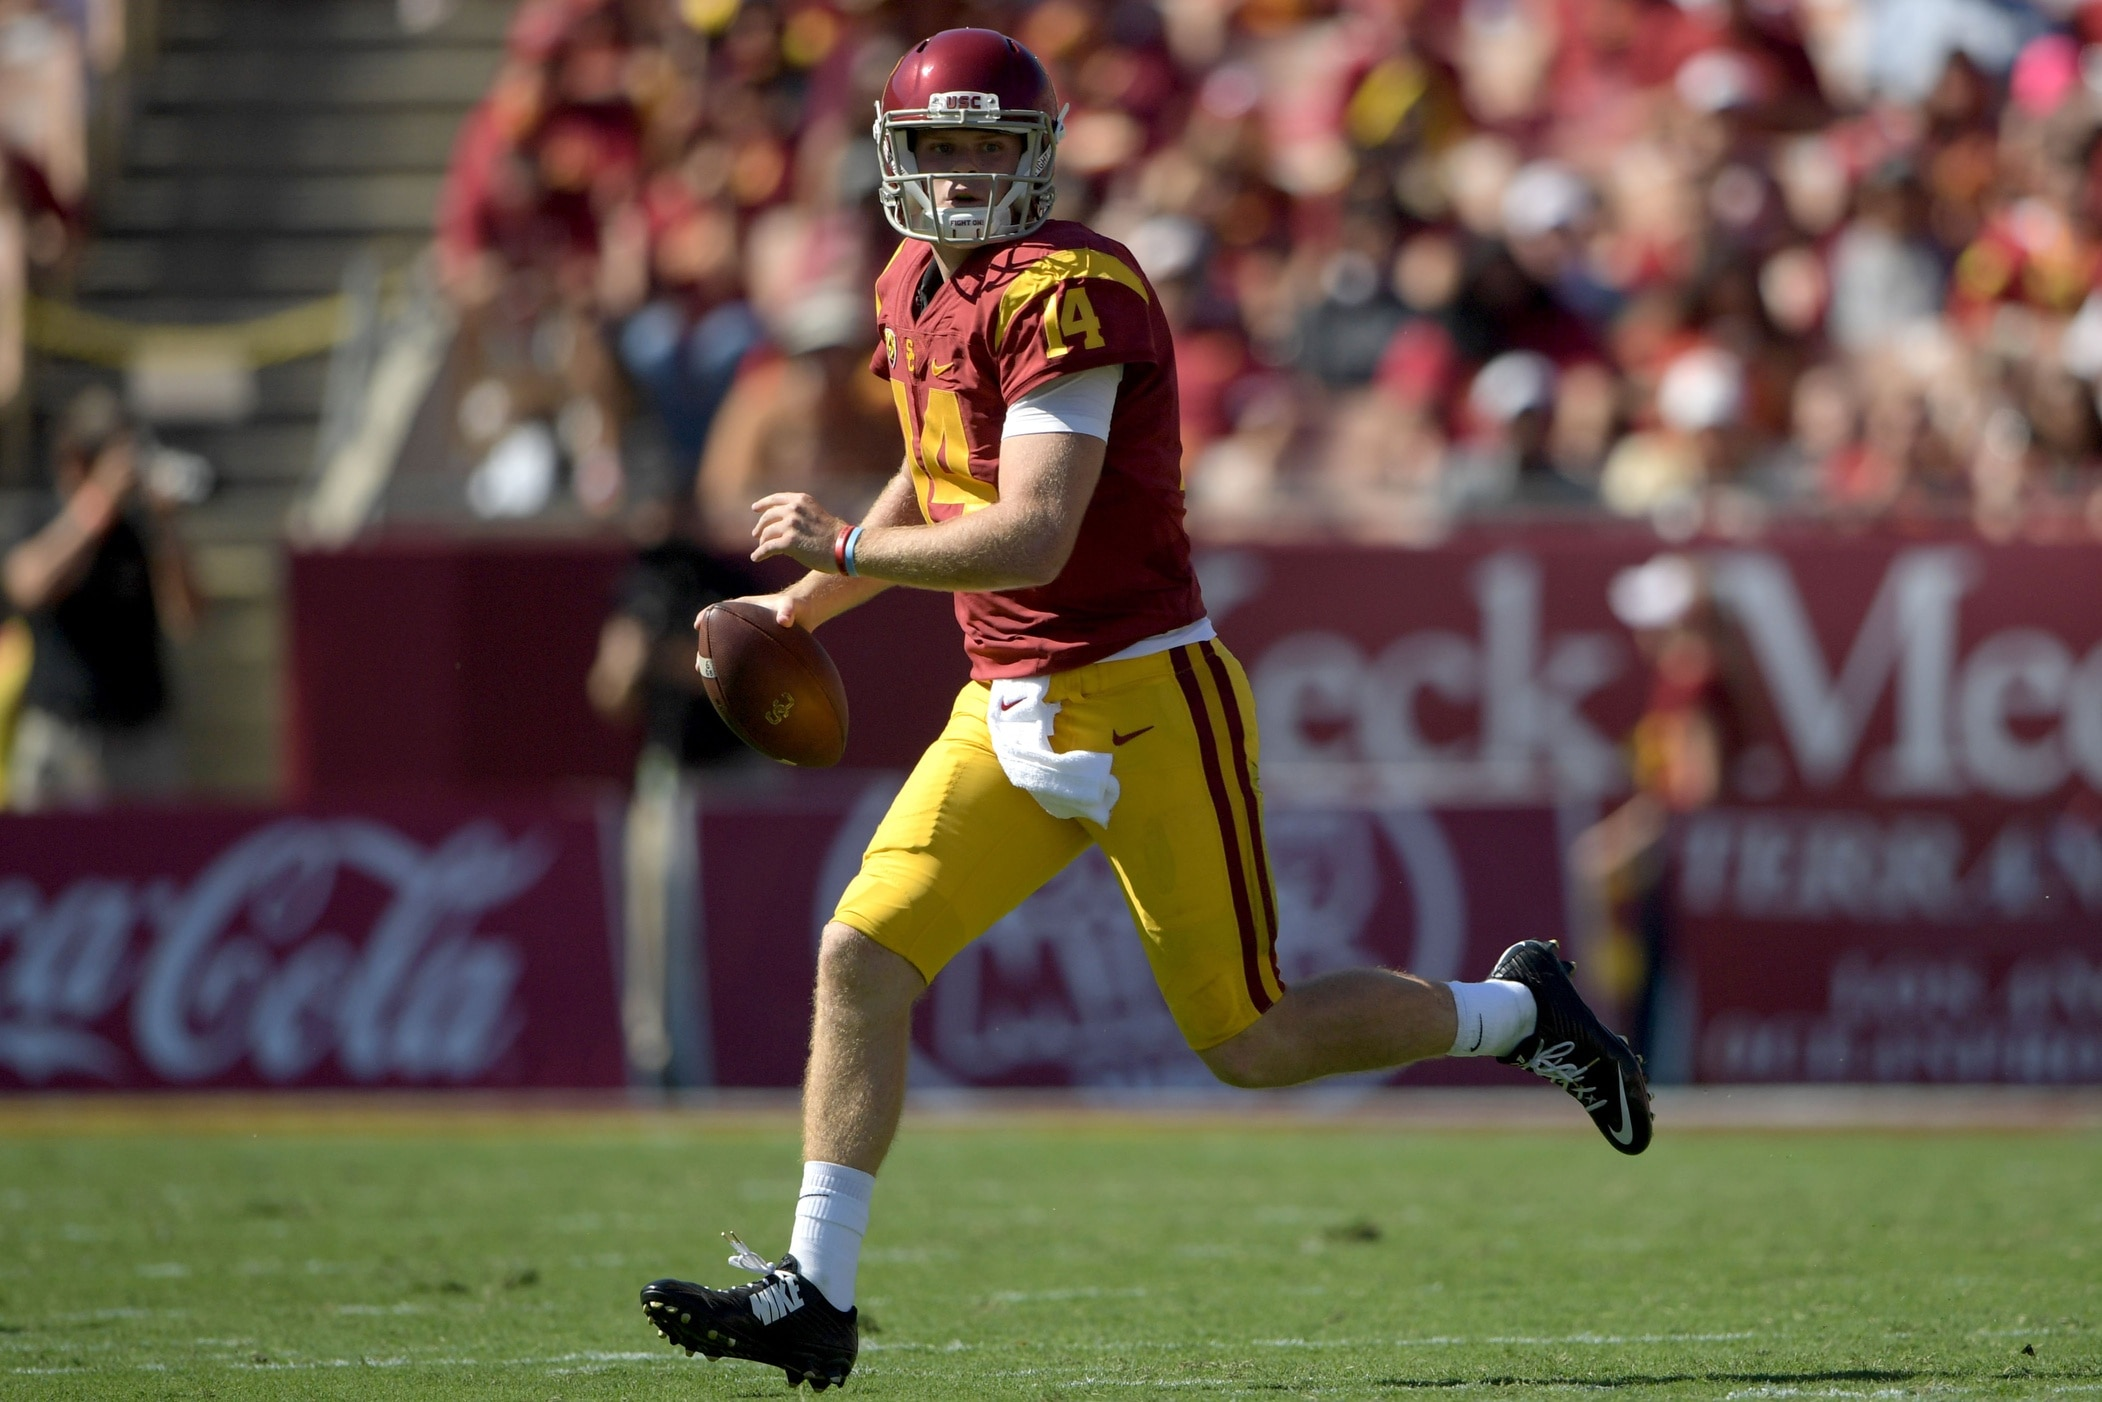 USC Trojans quarterback Sam Darnold college football